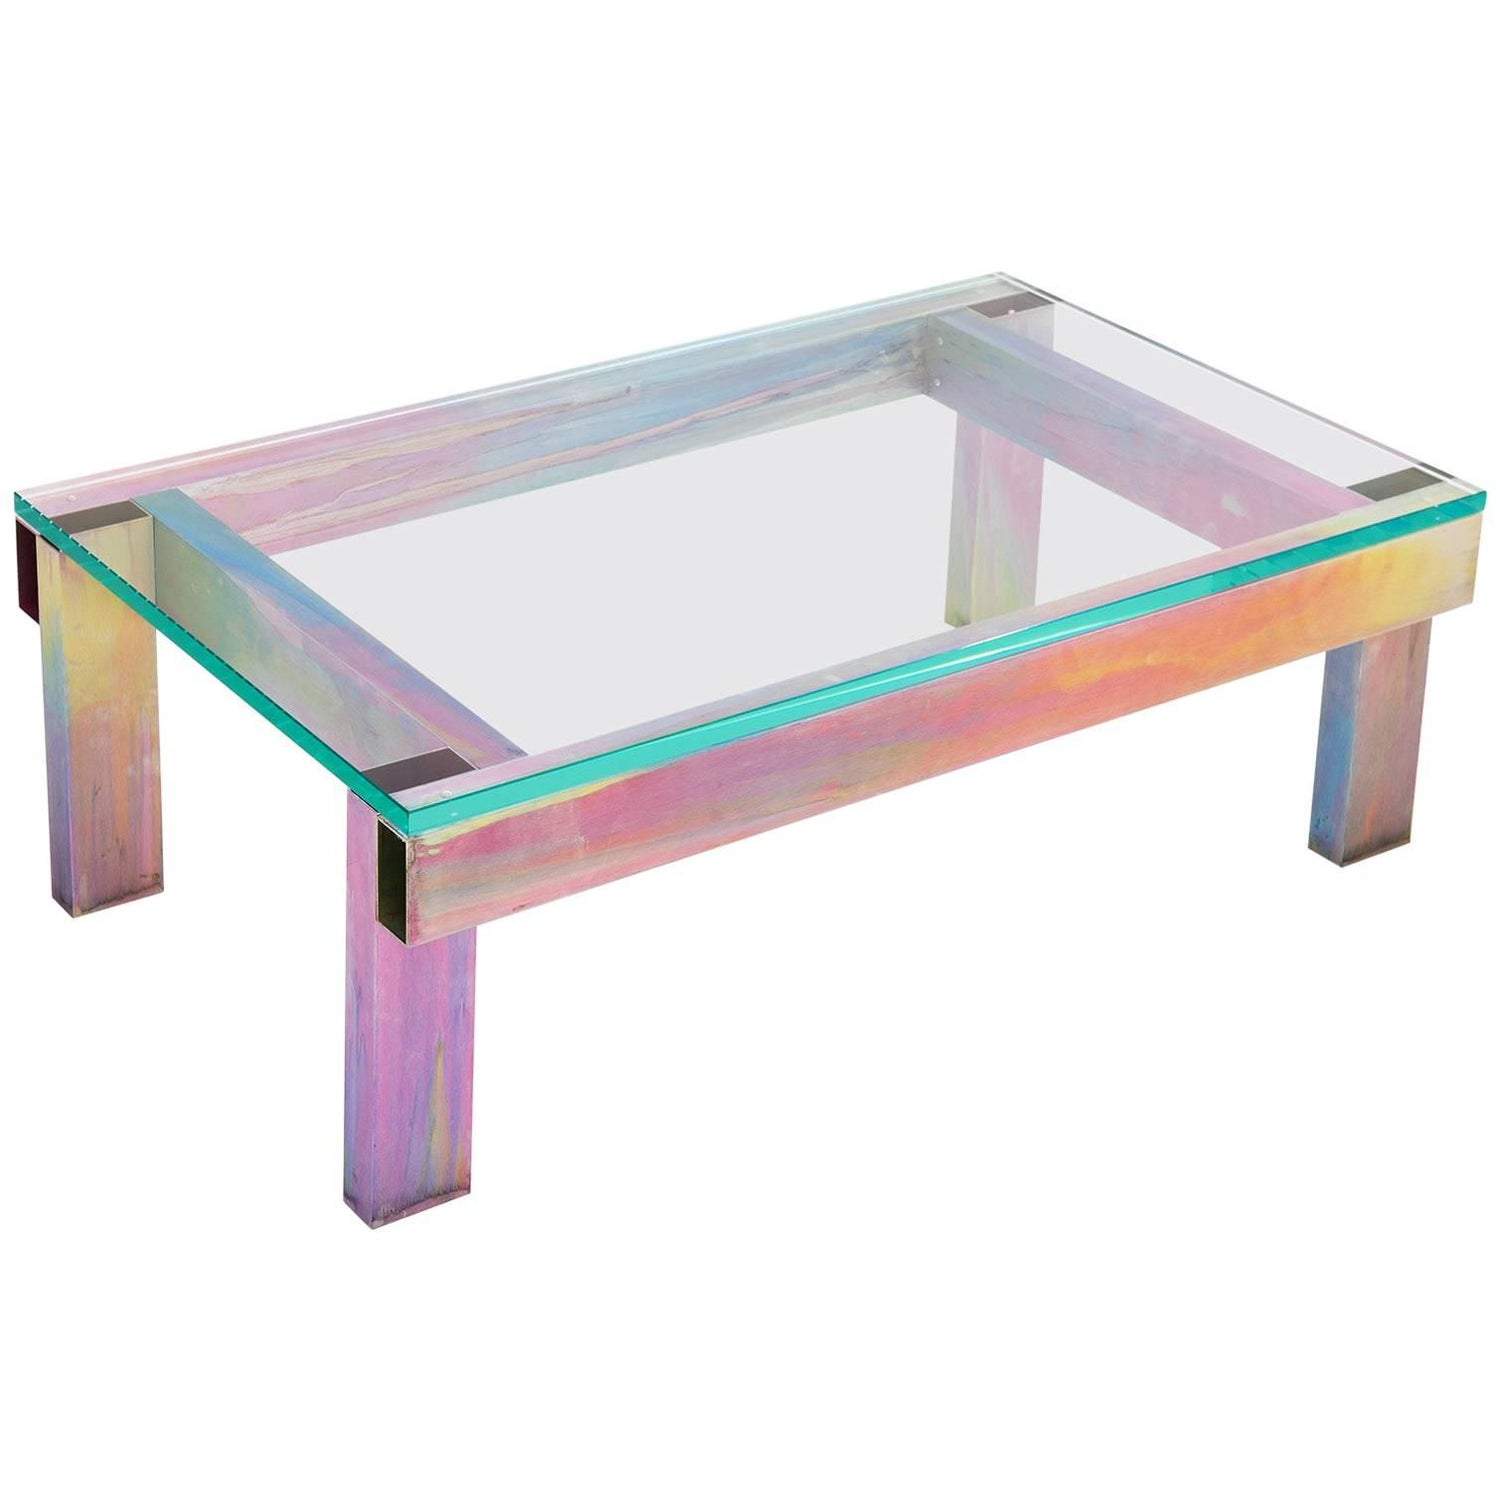 Anodized Aluminium Coffee Table by Fredrik Paulsen For Sale at 1stdibs